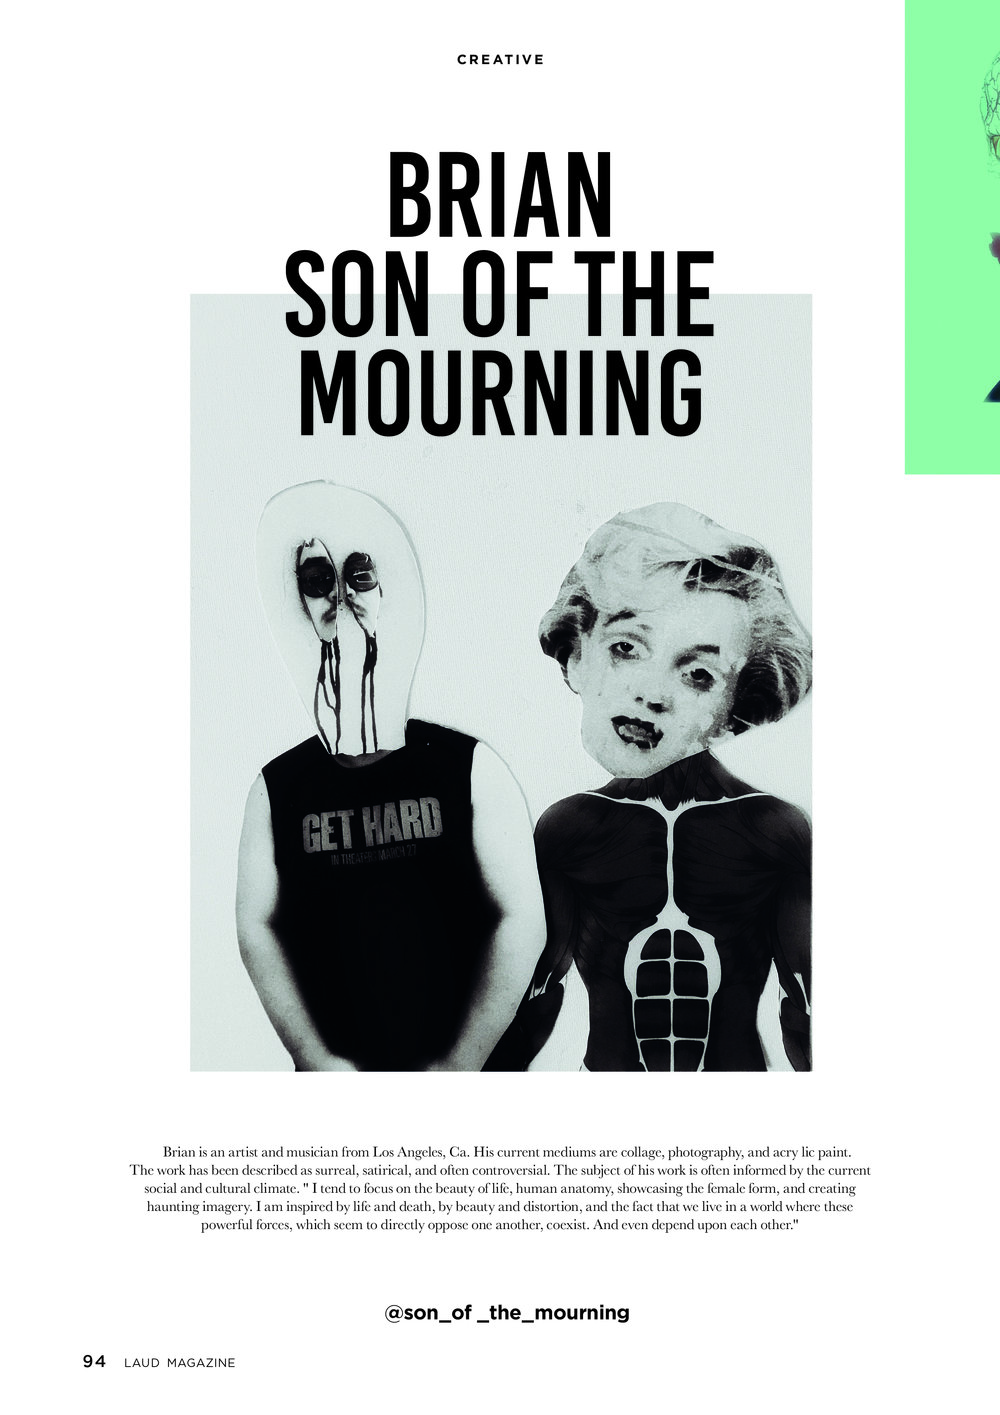 laud magazine - issue #10 son of the mourning single pages.jpeg